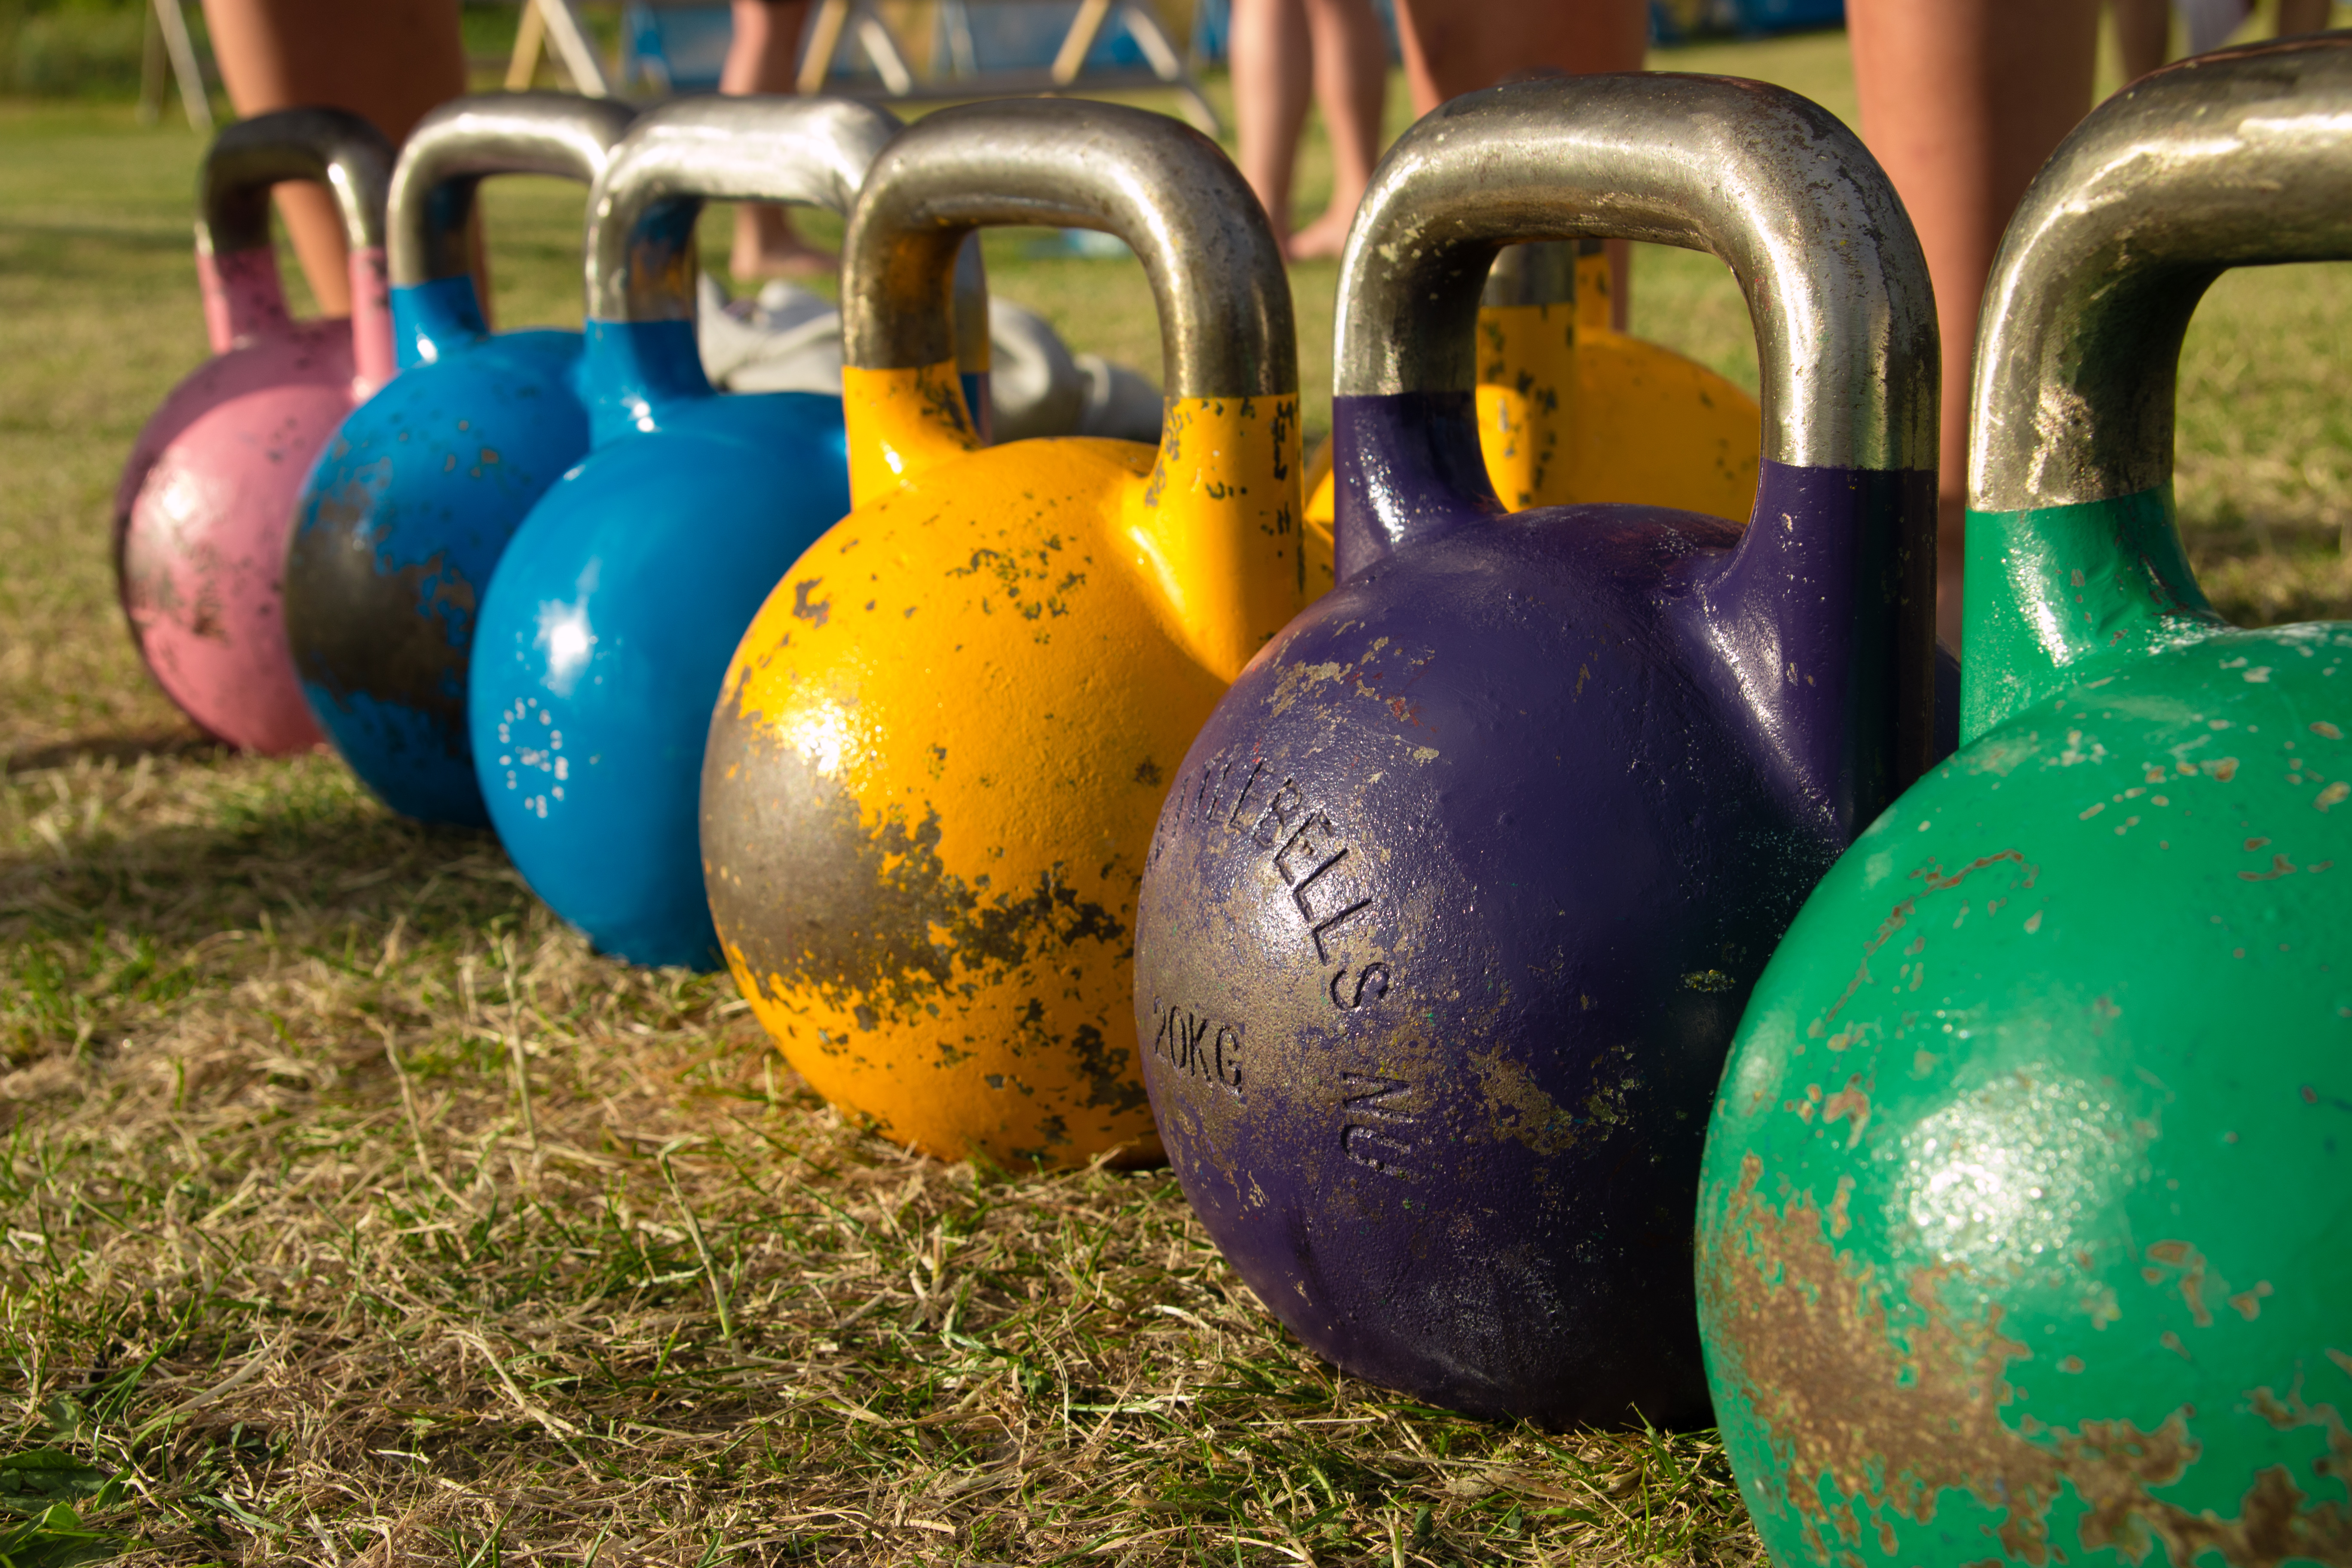 http://upload.wikimedia.org/wikipedia/commons/2/2d/Competition_kettlebells_8-24_kilos.jpg